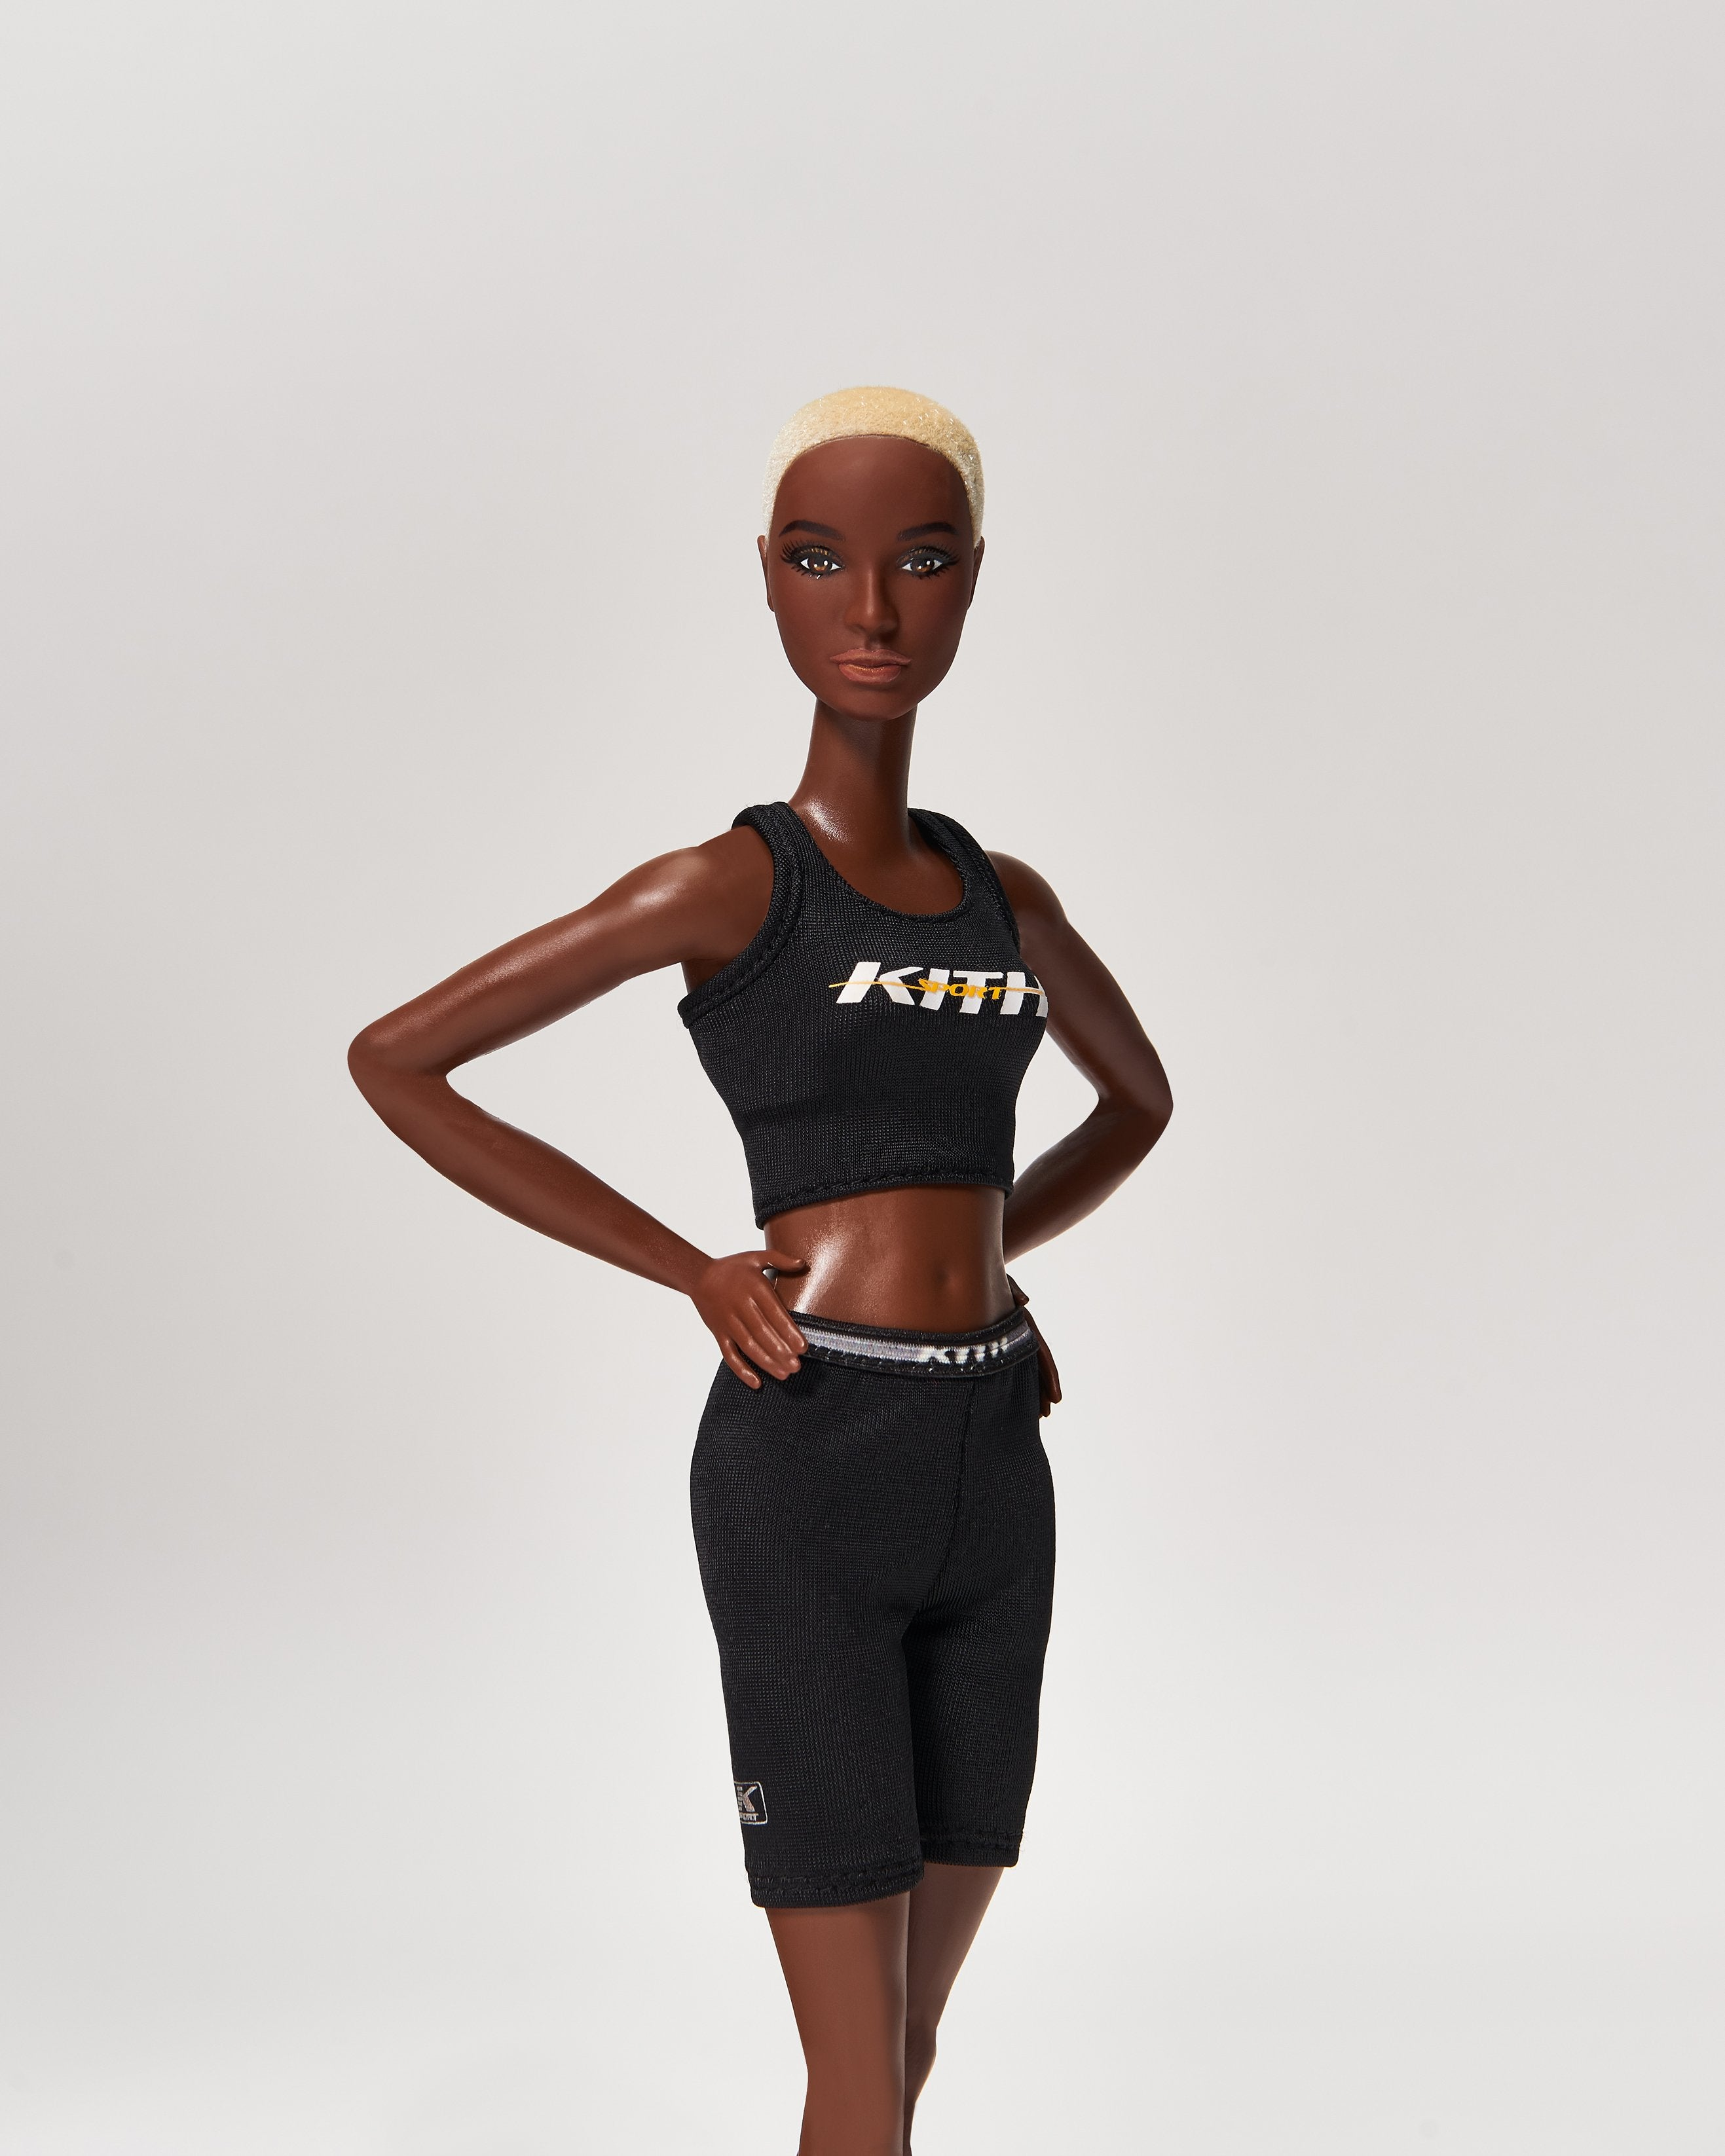 KITH Women Barbie doll